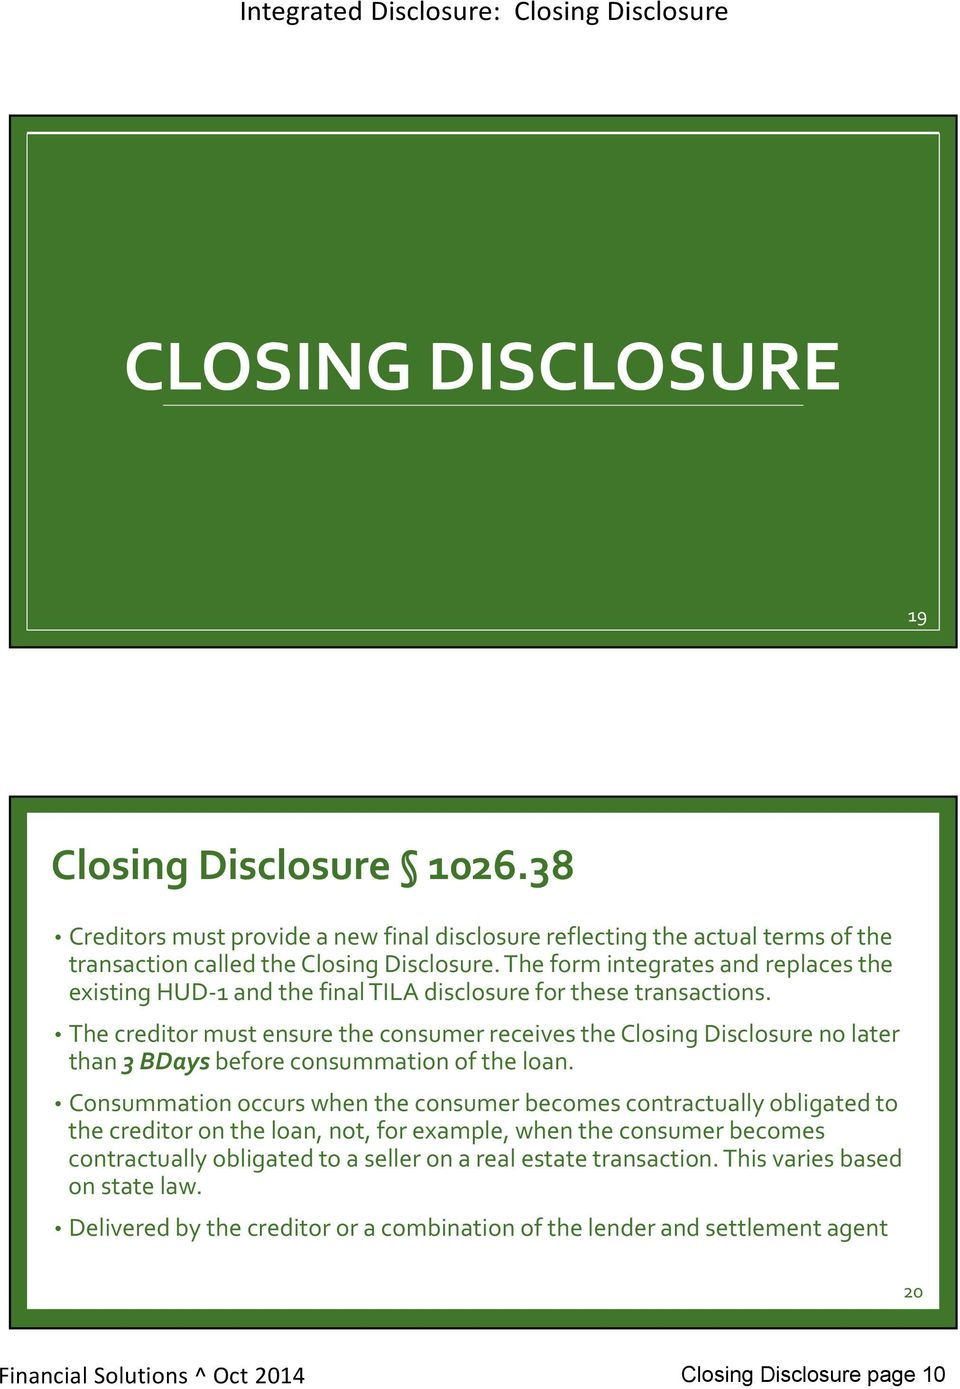 The creditor must ensure the consumer receives the Closing Disclosure no later than 3 BDays before consummation of the loan.